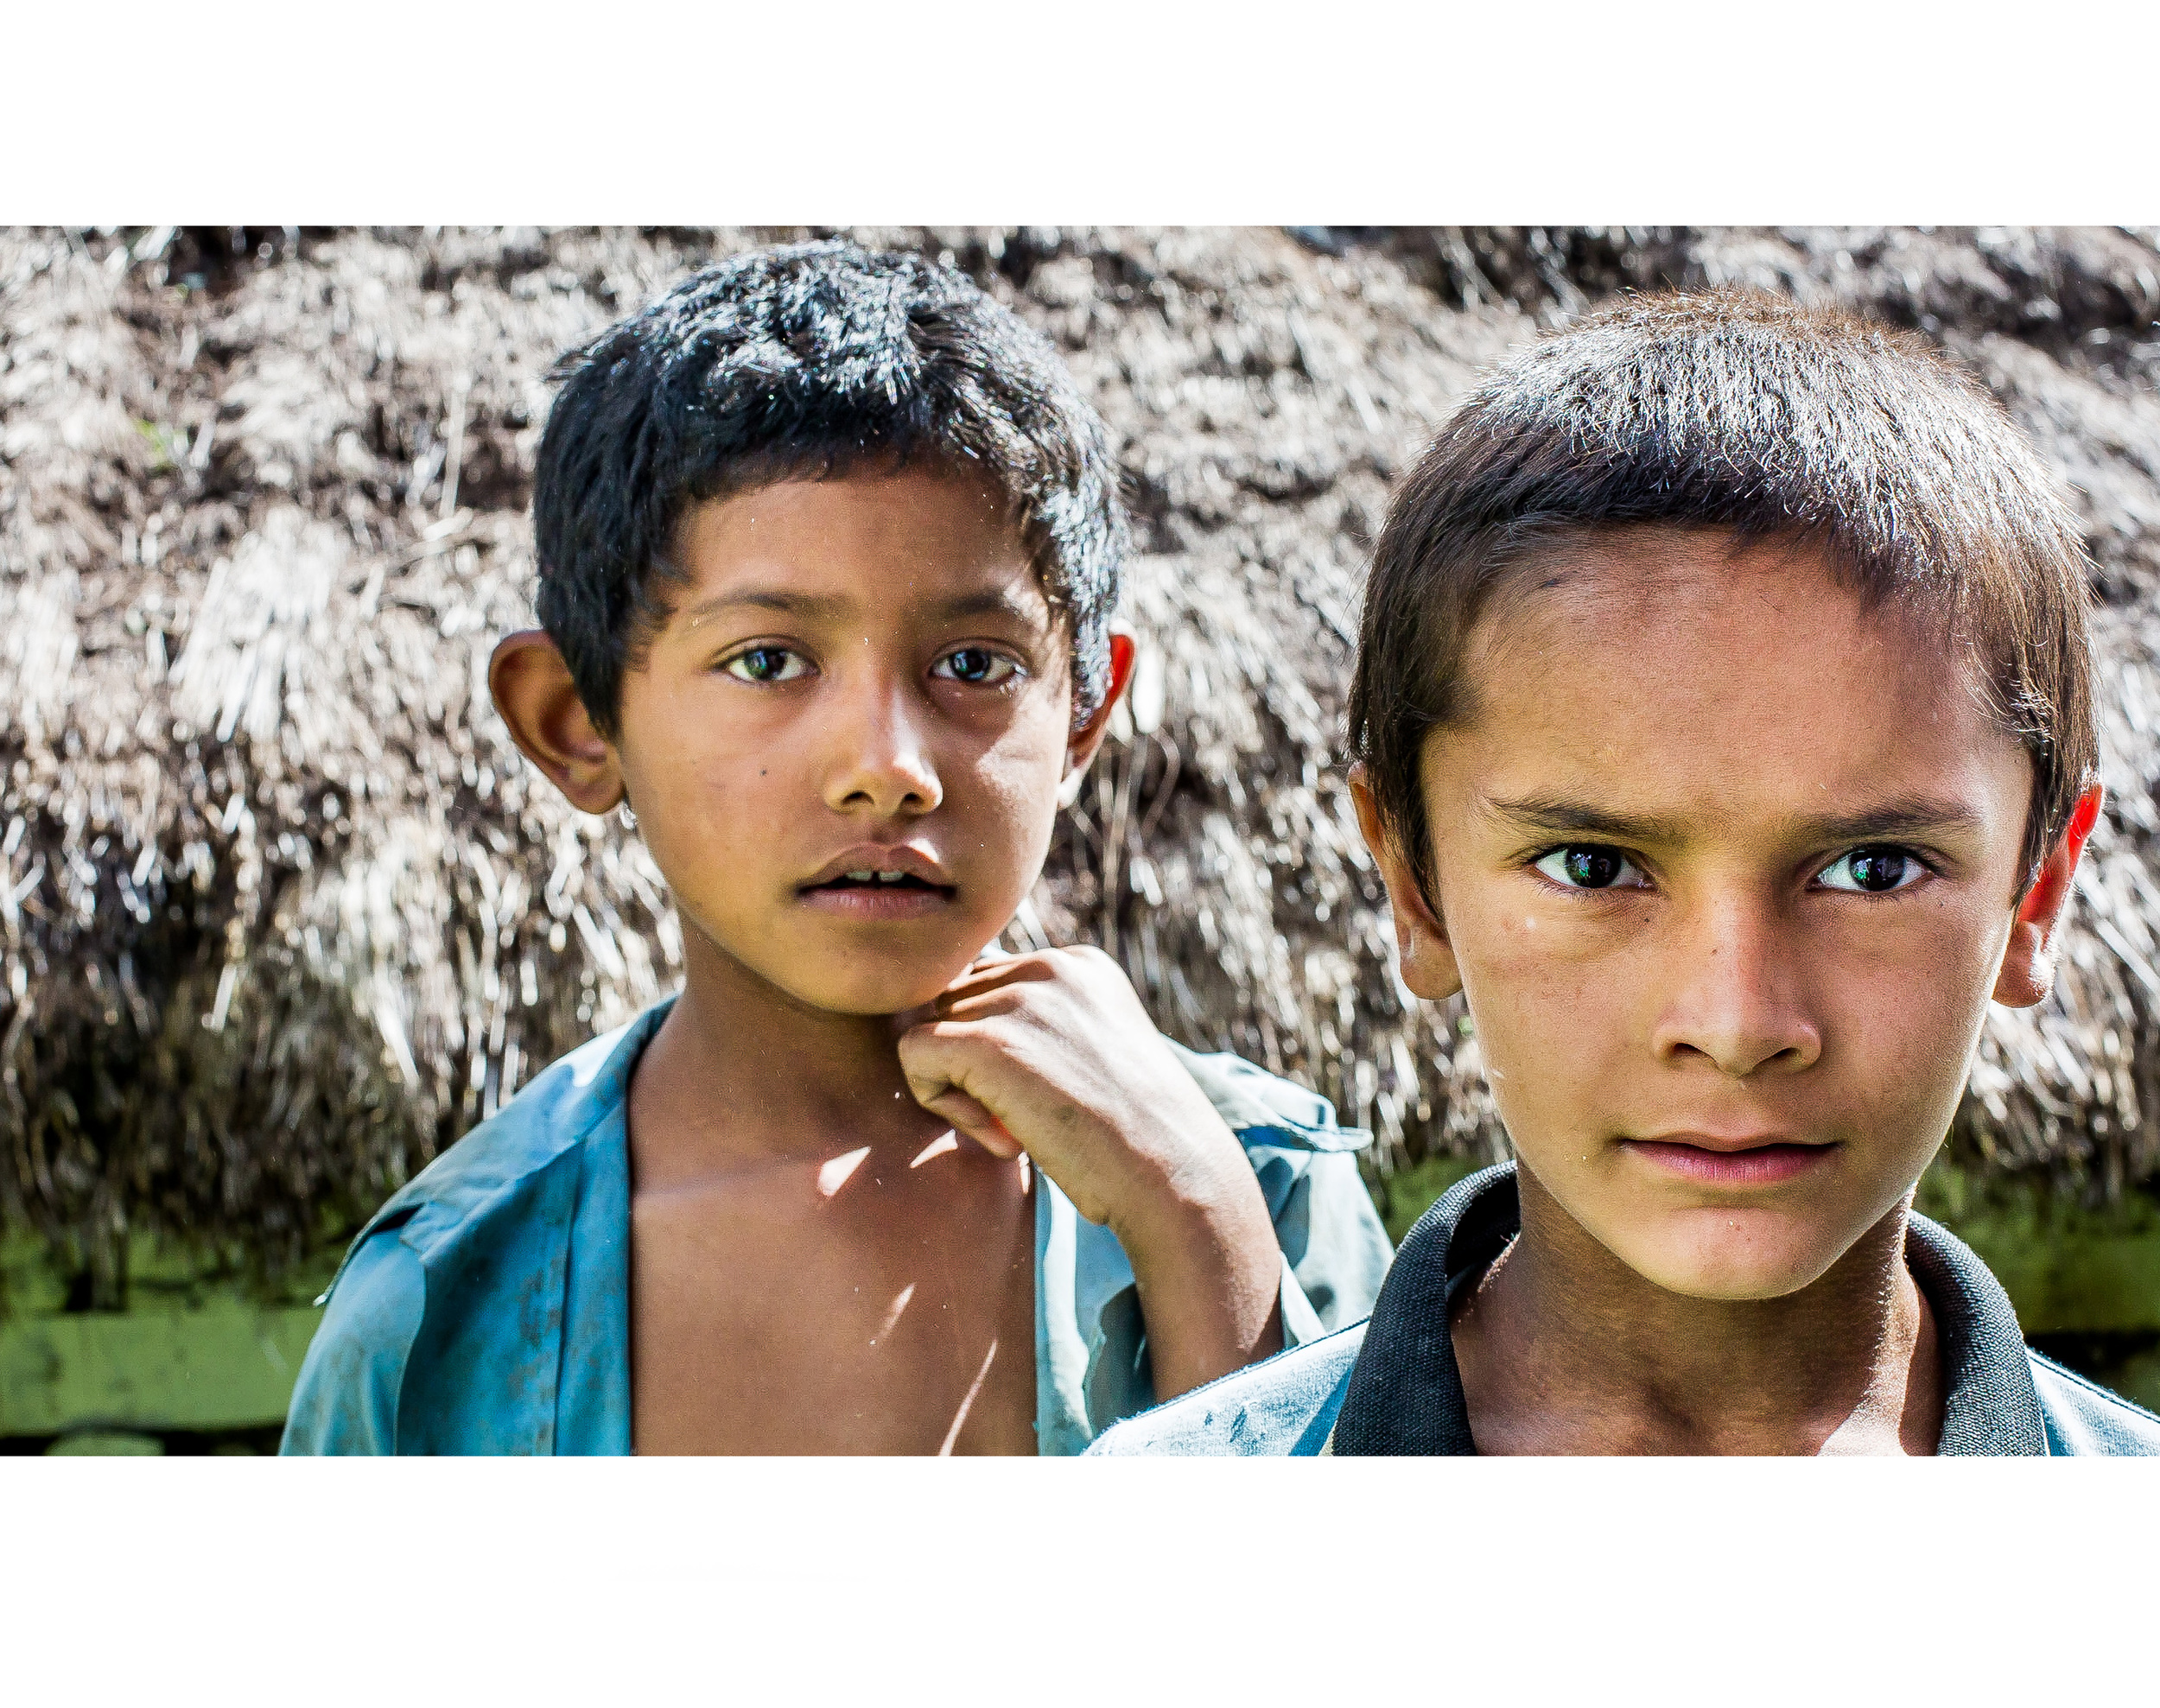 Two-Dalit-Children-Necha-Portret.jpg